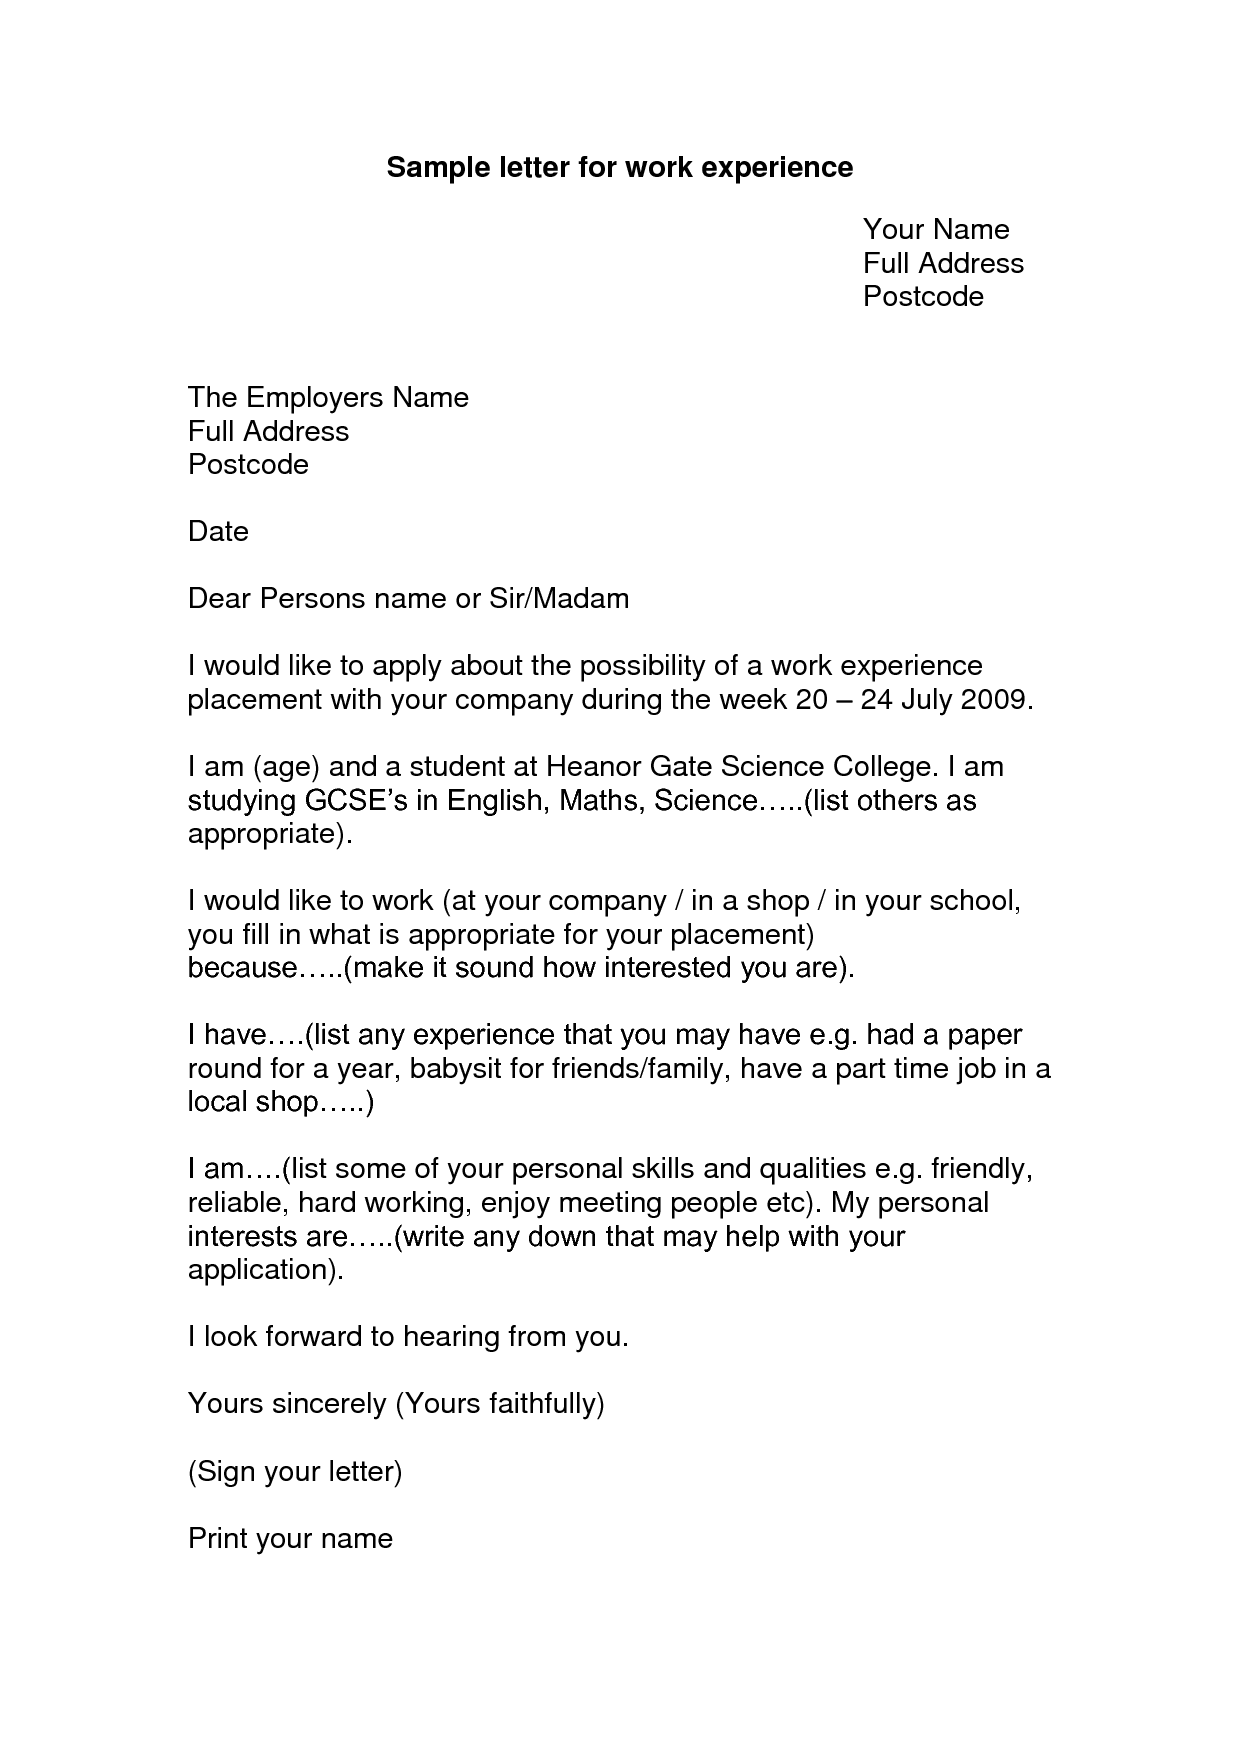 Cover Letter For Work Experience Placement  printable receipt template